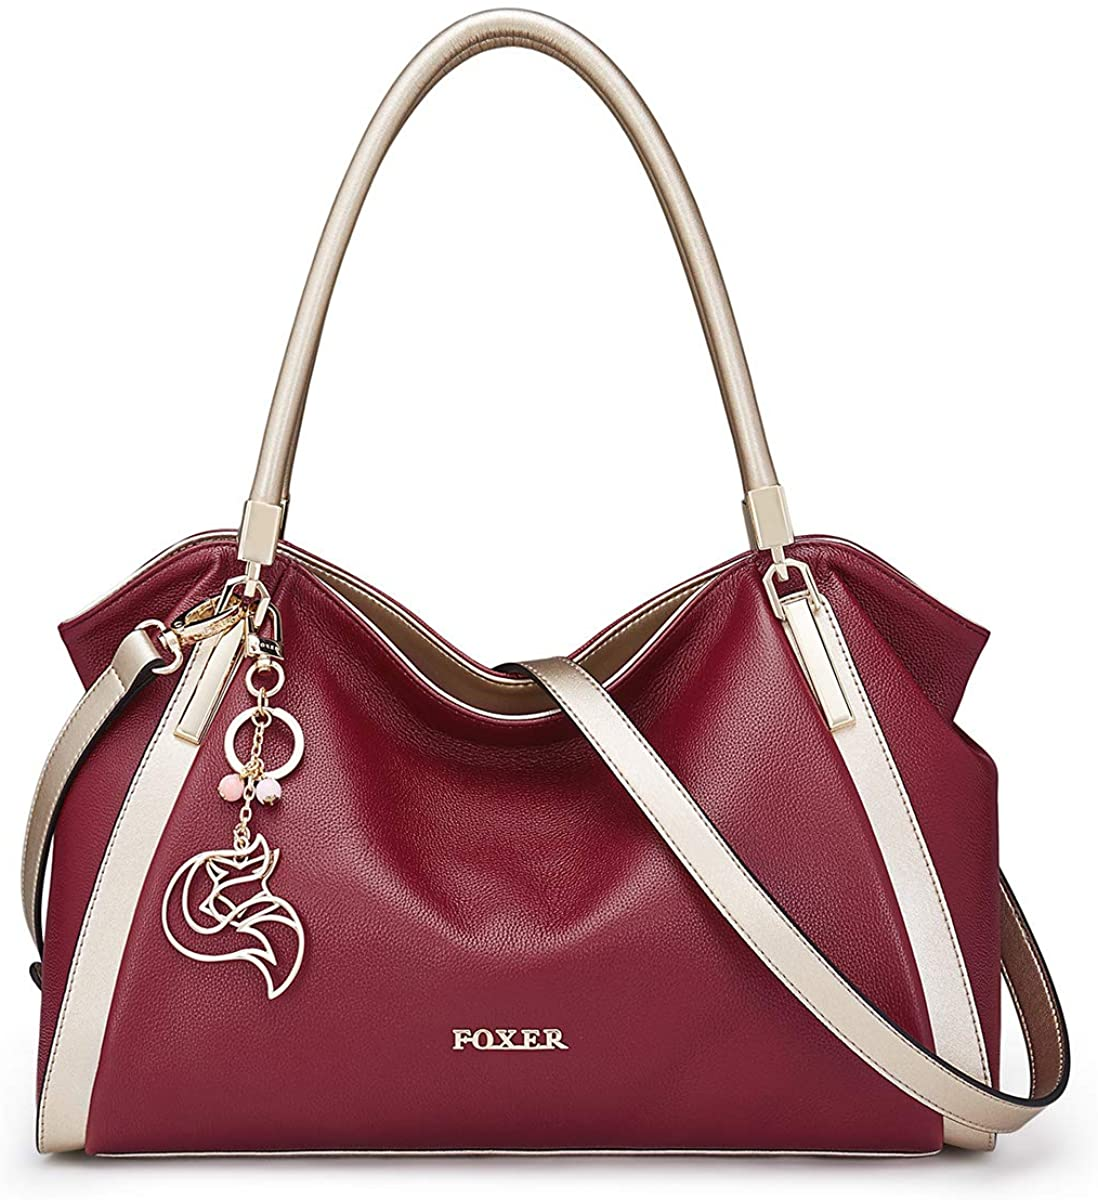 iFOXER Women's Leather Handbags Tote Shoulder Purse Top-handle Large Capacity Carryall Tote Purse